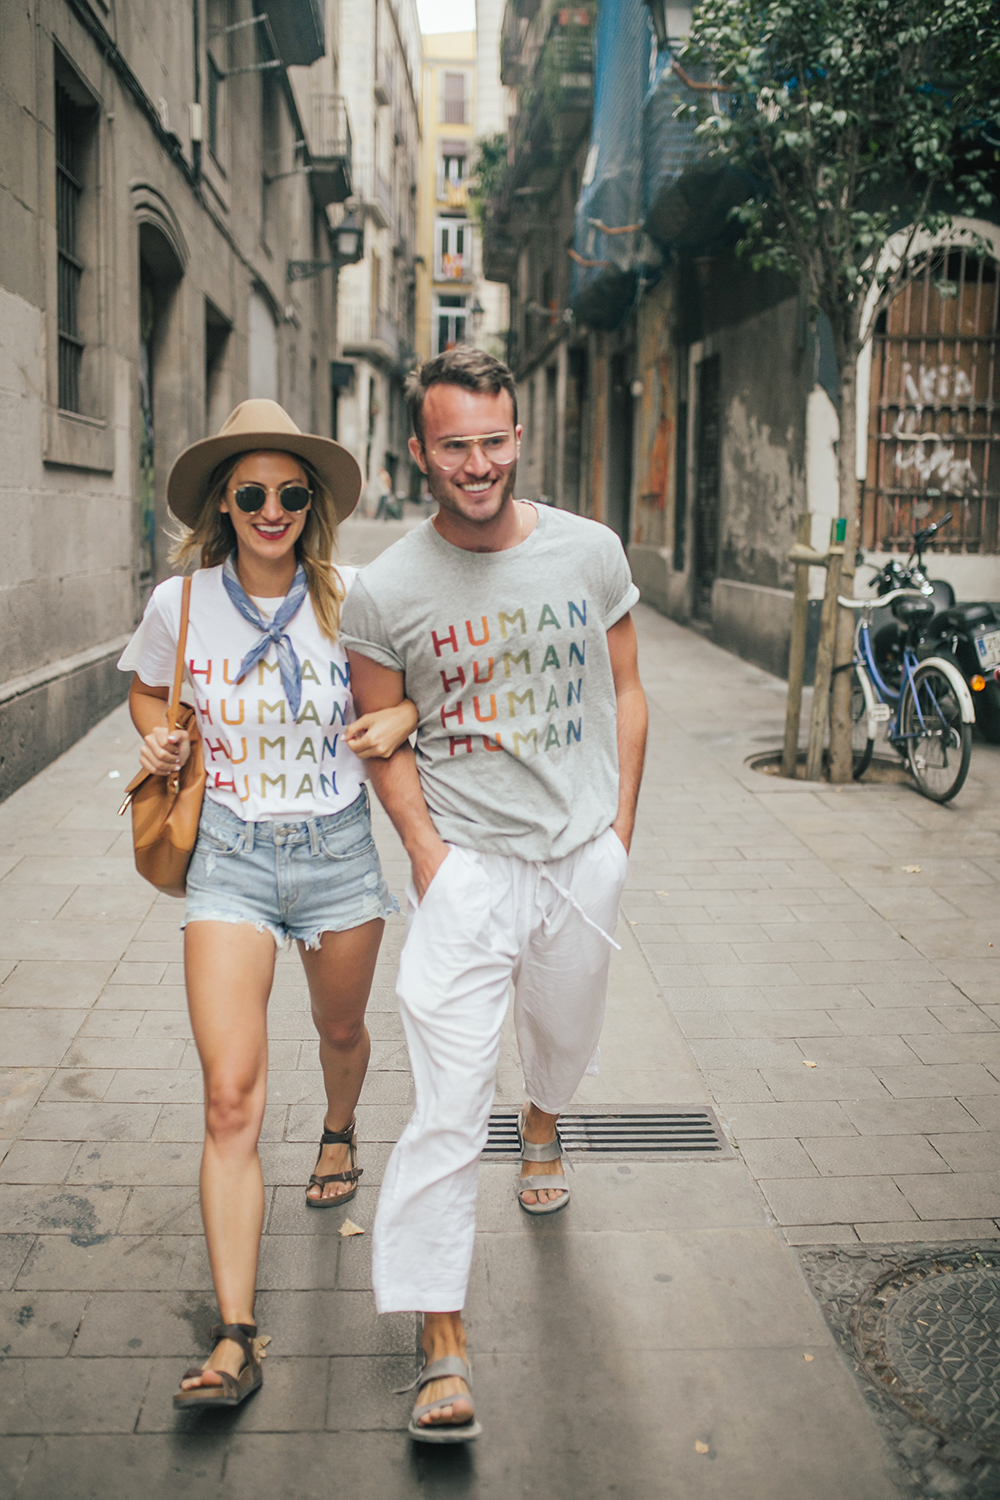 livvyland-blog-olivia-watson-fashion-travel-blogger-barcelona-spain-everlane-100-percent-human-tee-shirt-best-friends